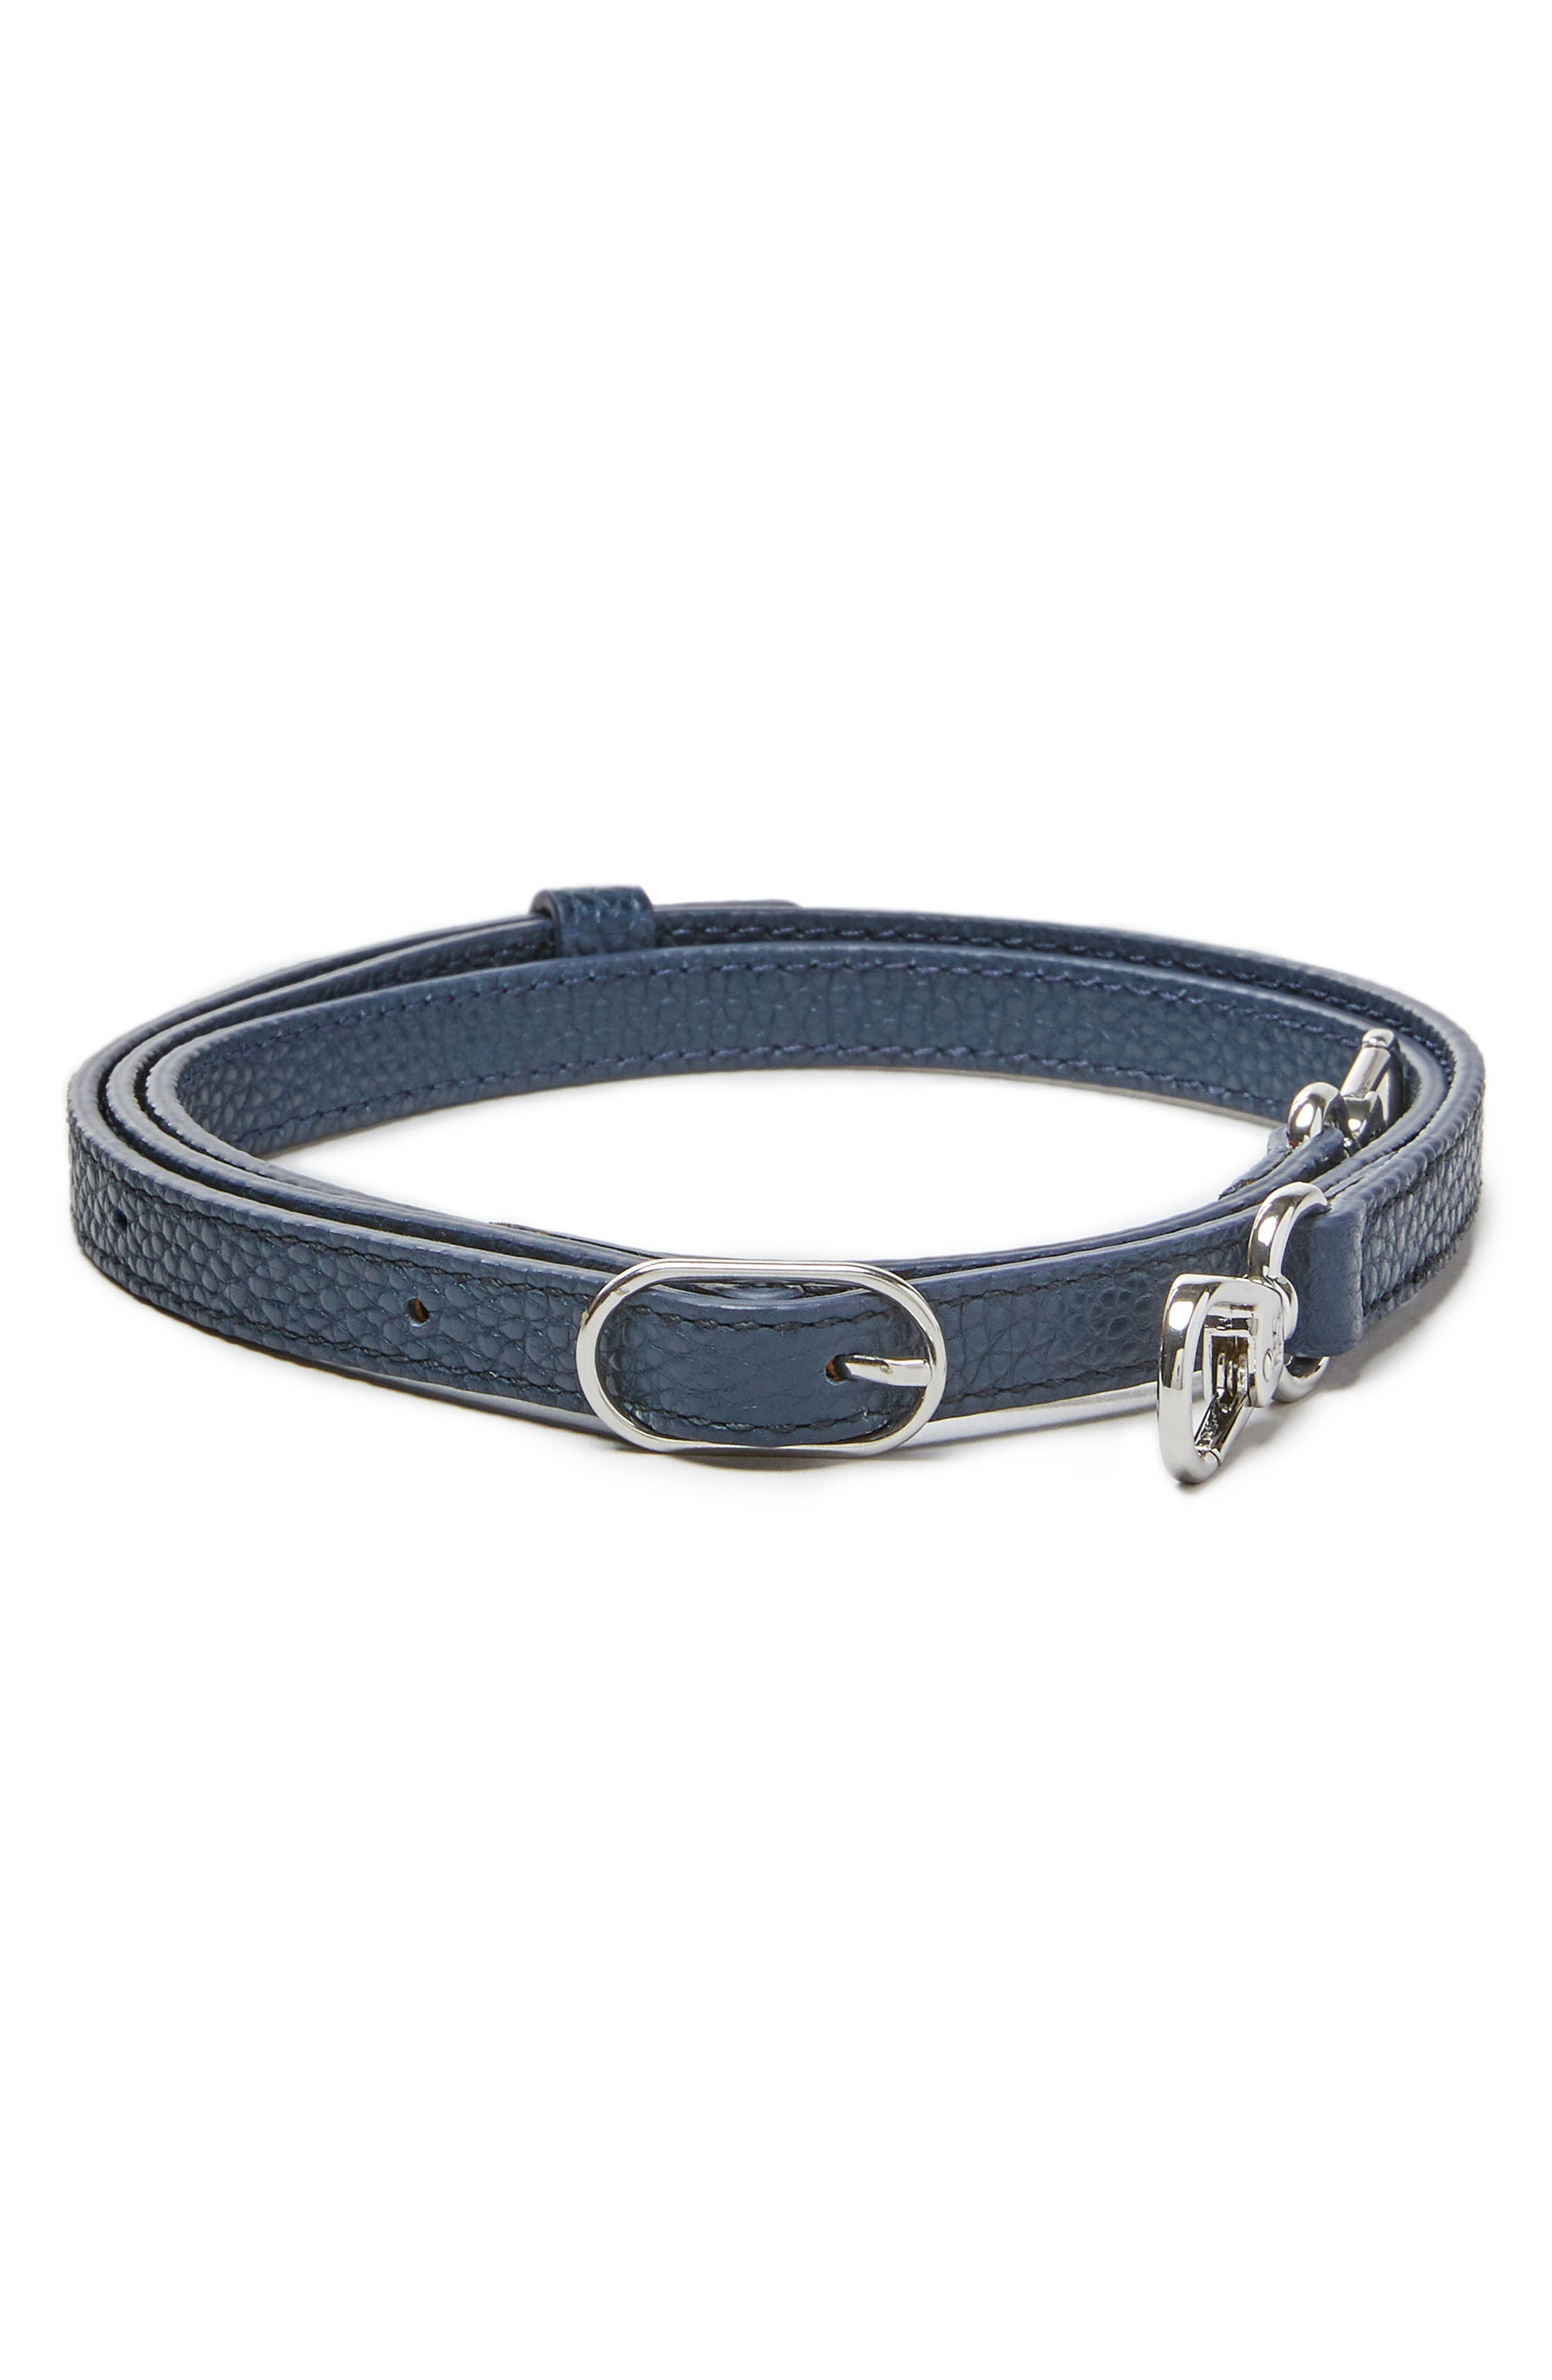 Leather Fanny Strap,                             Main thumbnail 1, color,                             Pebbled Oxford